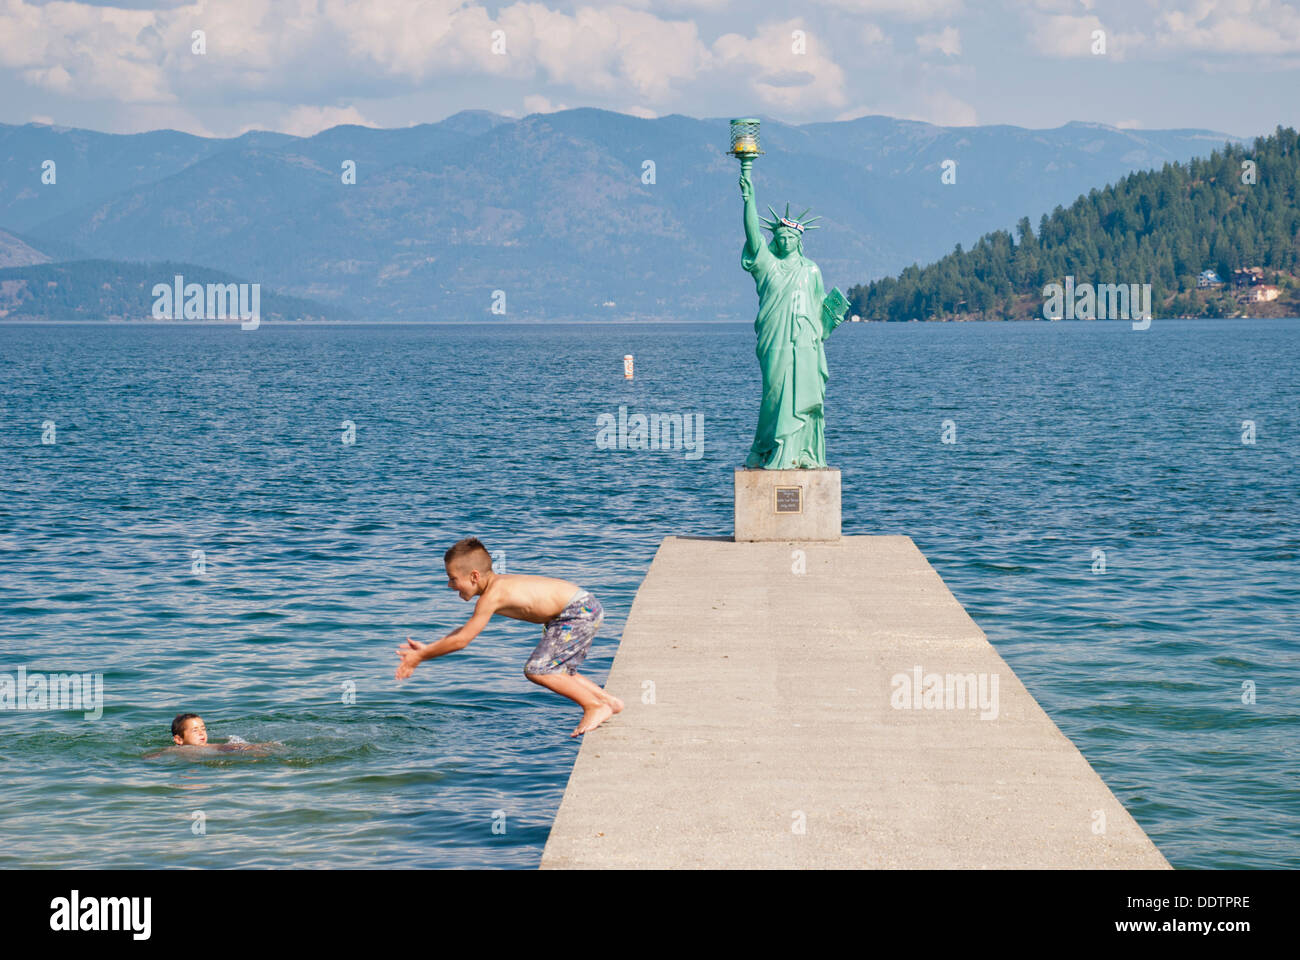 Young boys brave the chilly waters of Lake Pend Oreille, Sandpoint, Idaho, USA. - Stock Image